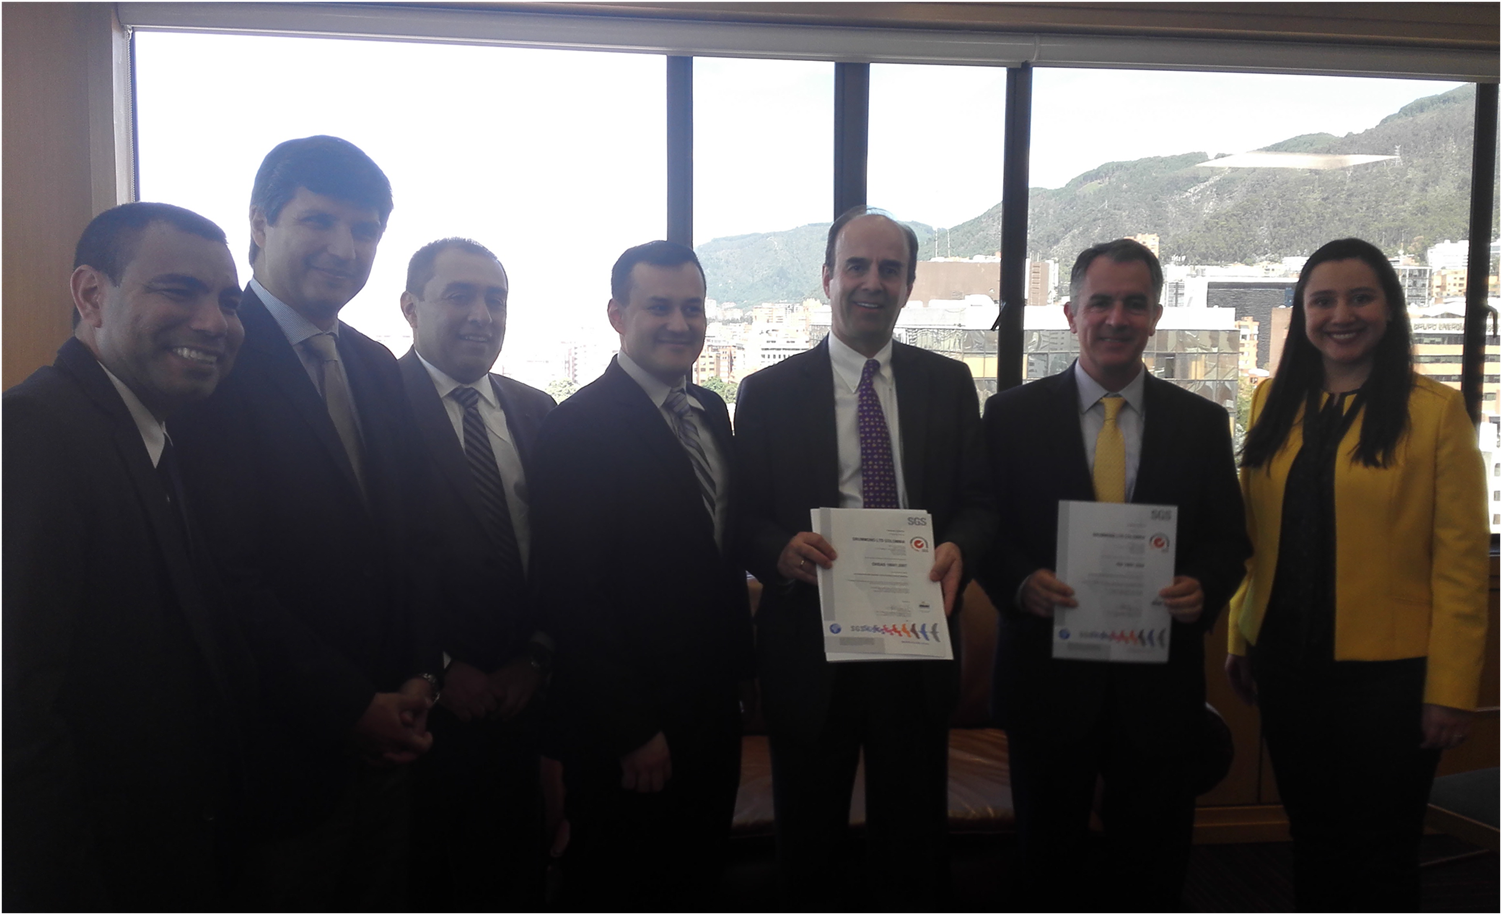 Jose Miguel Linares, President of Drummond Ltd. and Alfonso Rubiano, Planning and Development Manager of the company's Hydrocarbons Division, received the ISO 14001 and OHSAS 18001 certificates from Ivan Dominguez and his team at SGS.